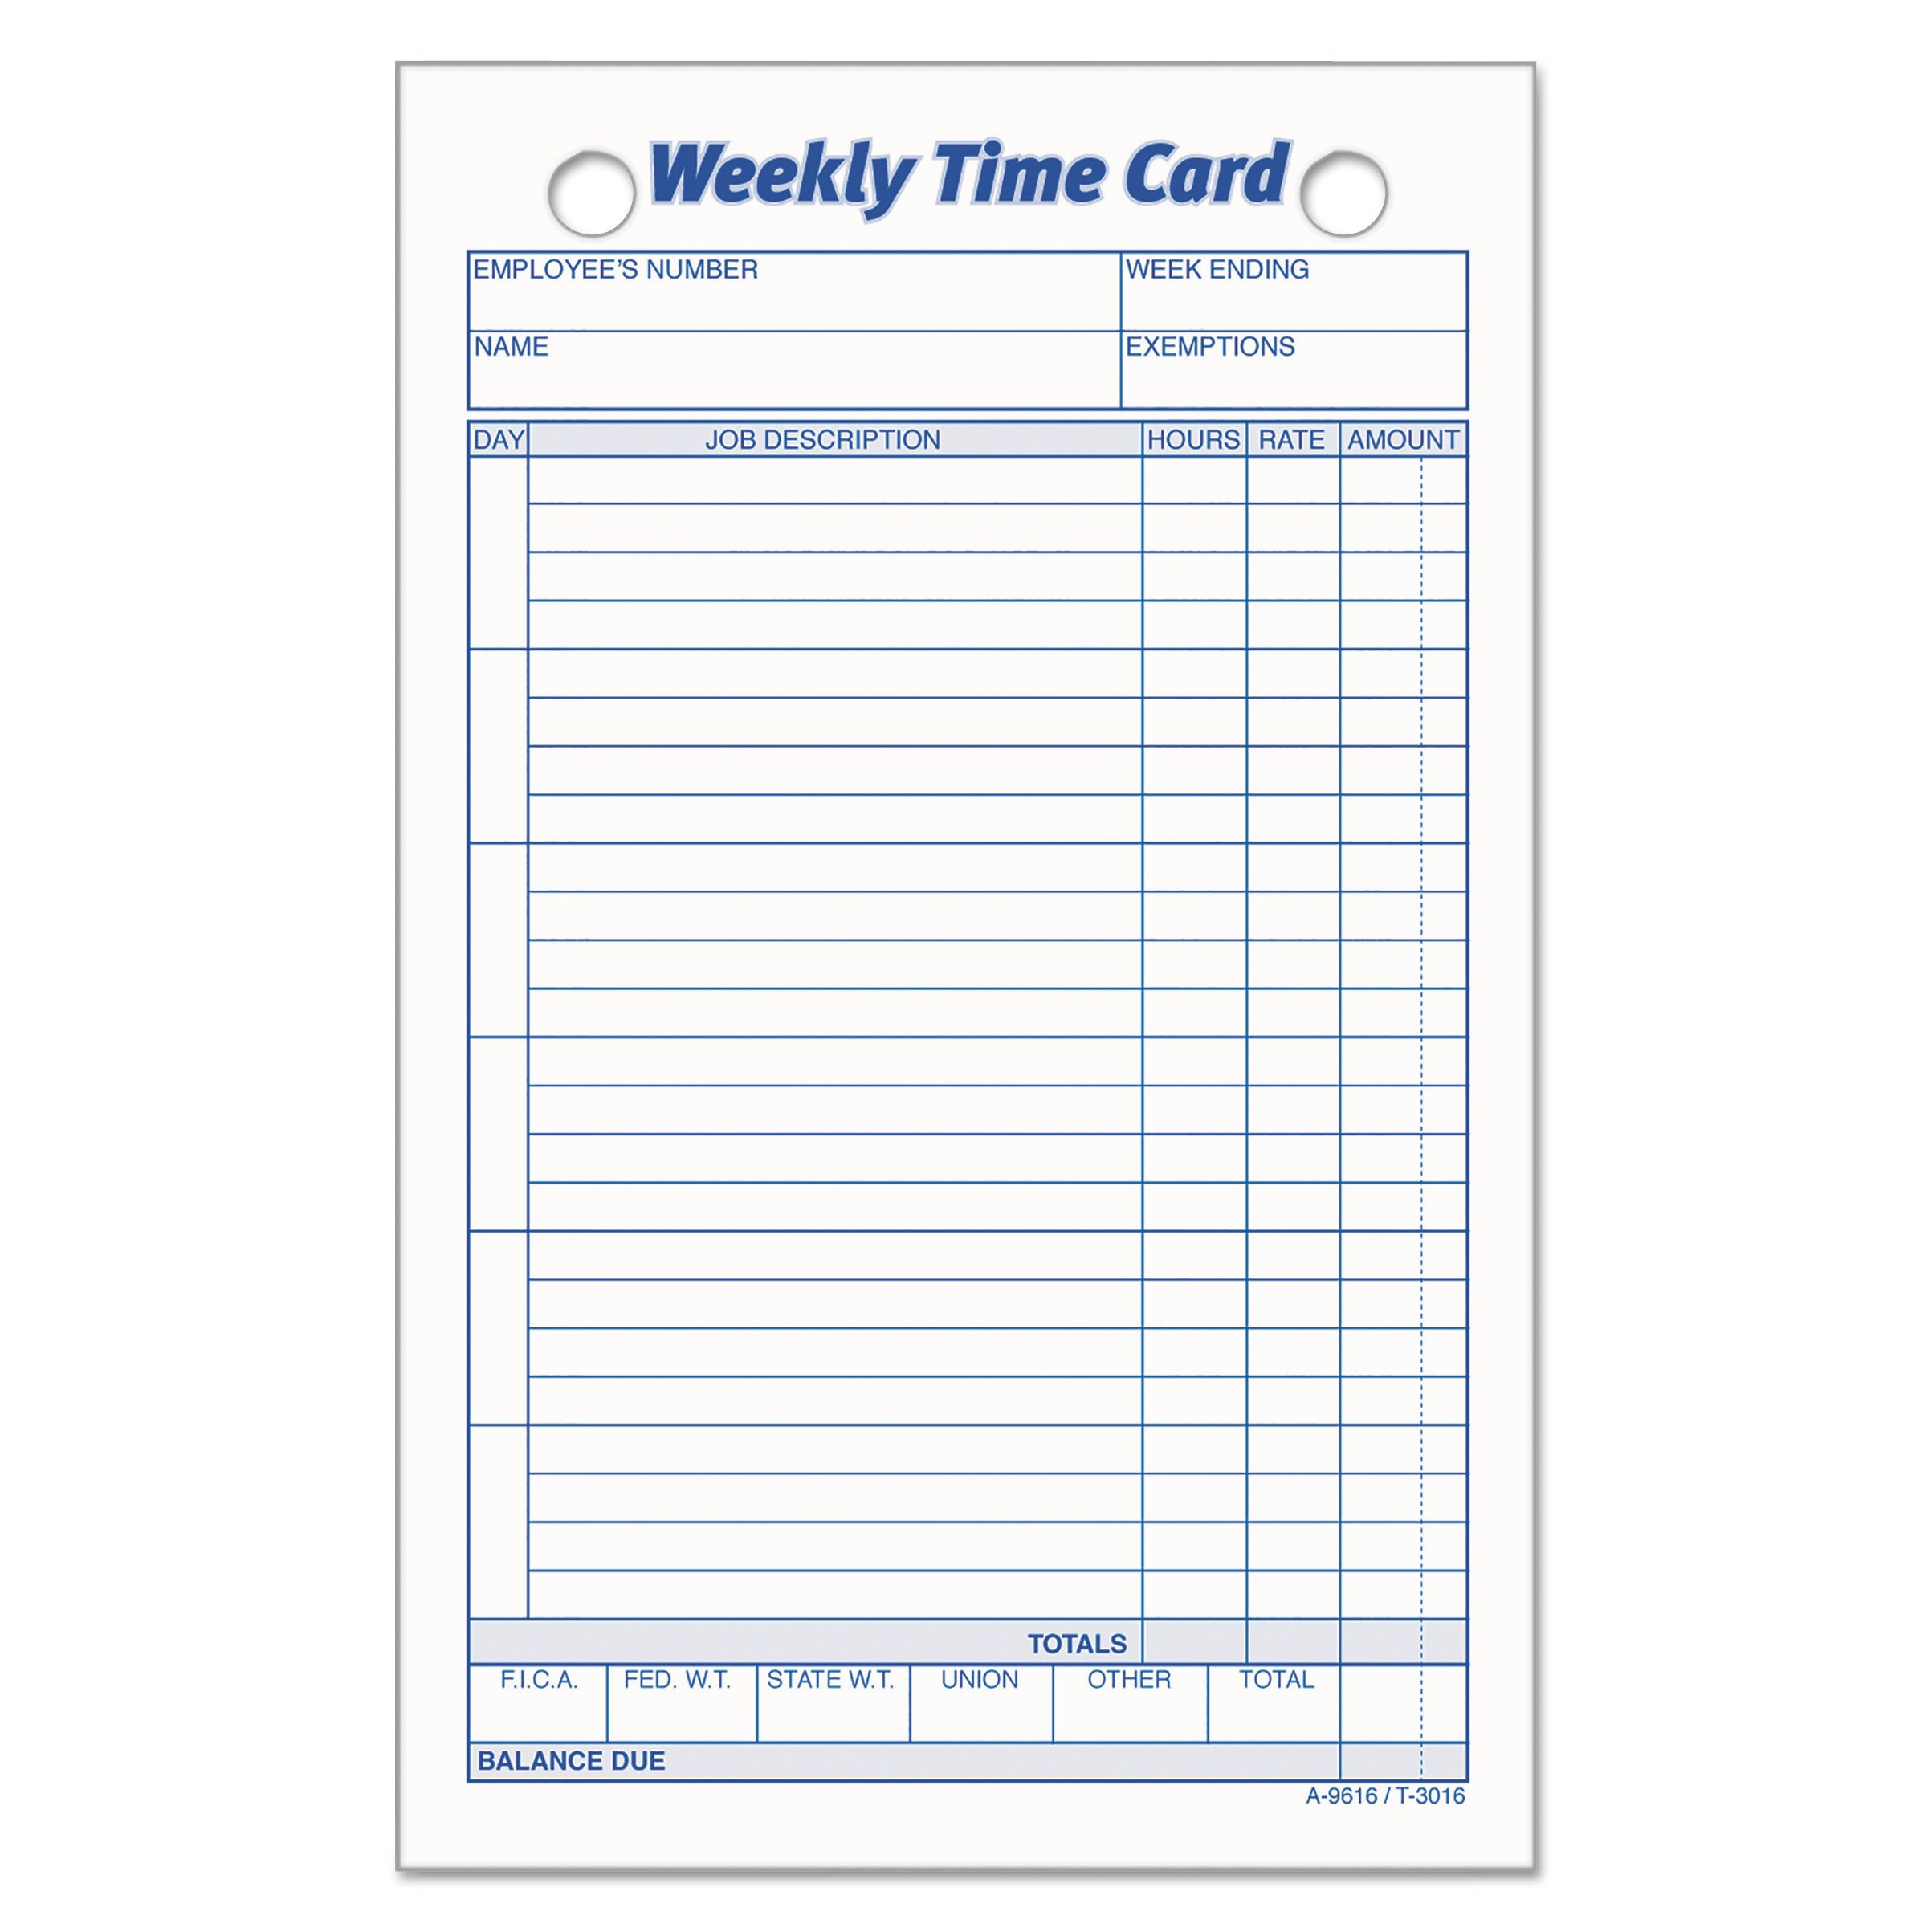 TOPS 3016 Employee Time Card, Weekly, 4 1/4 x 6 3/4 (Pack of 100)